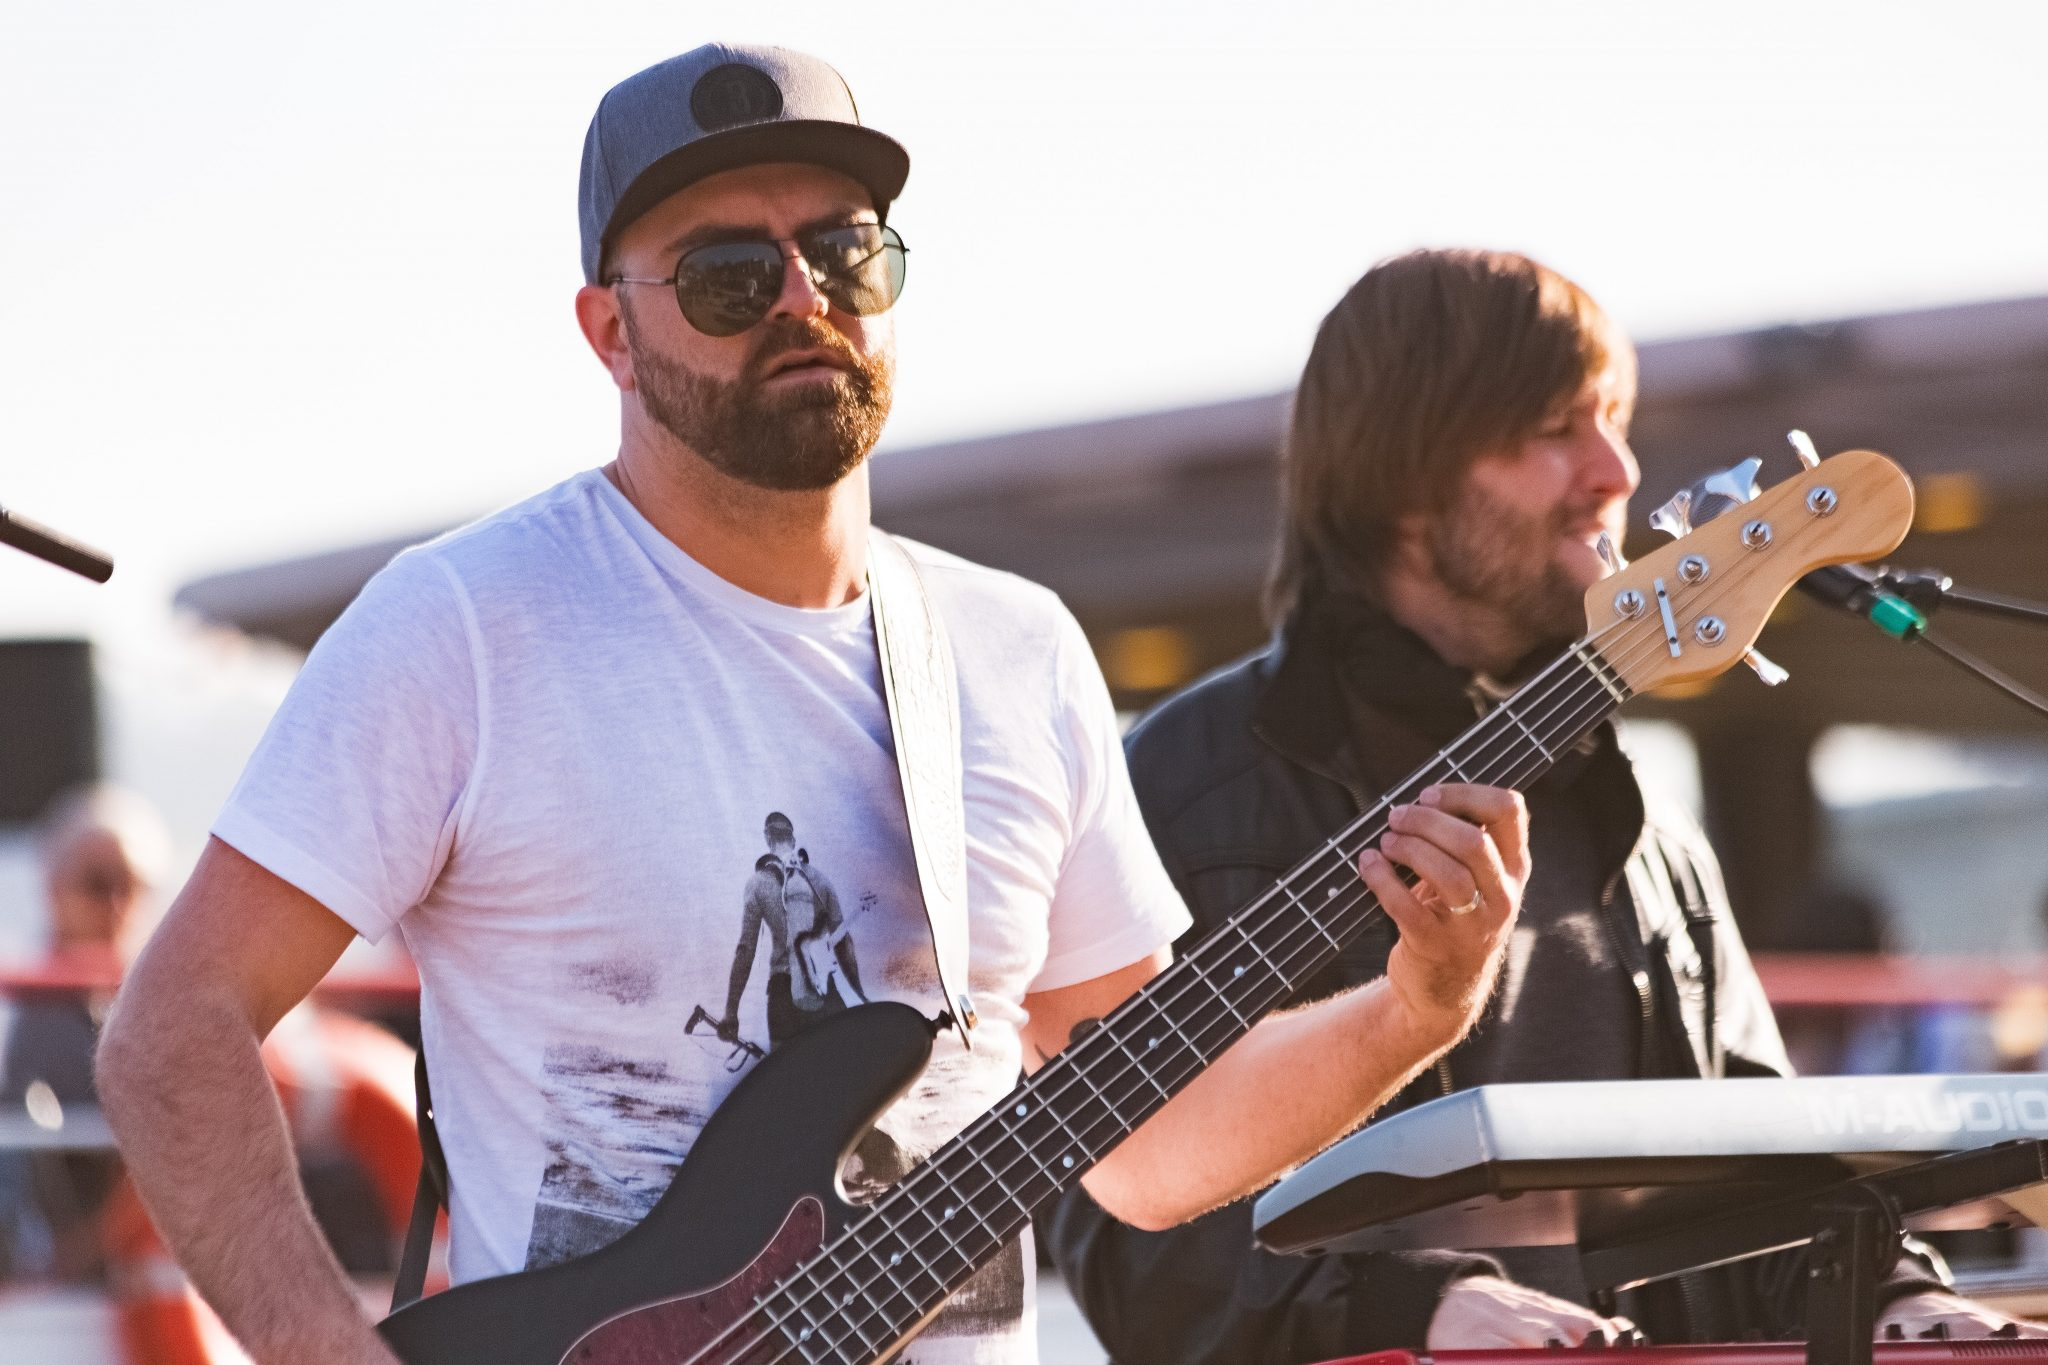 bassist and keyboardist performing on outdoor stage